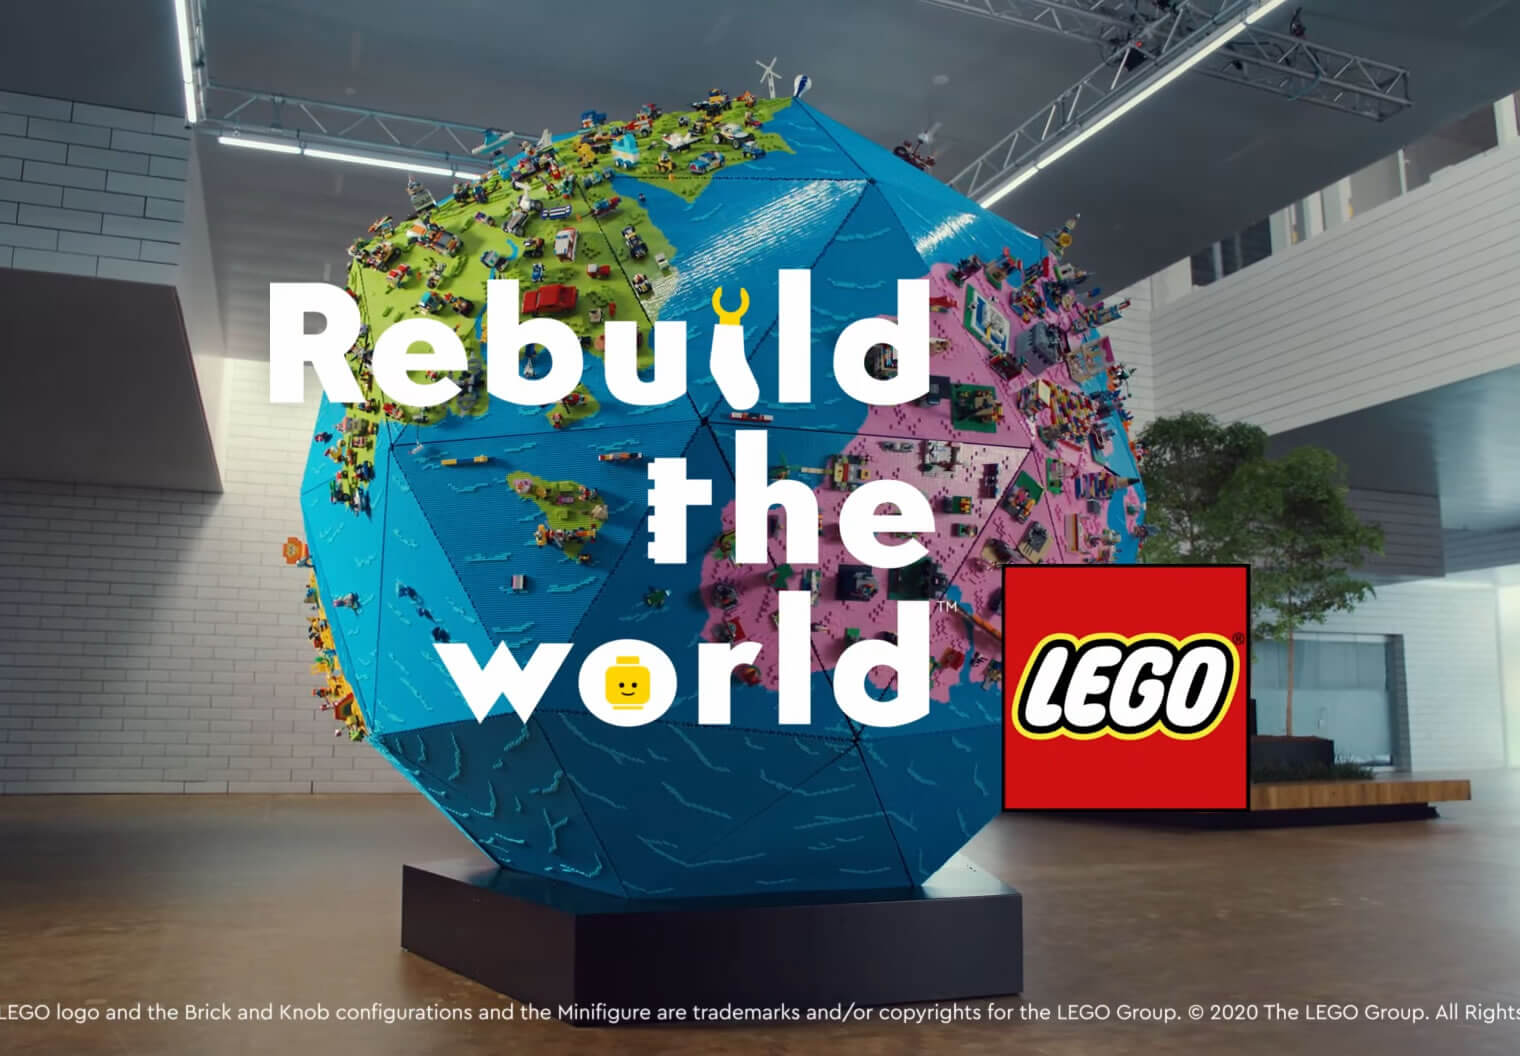 Rebuild the World with Lego